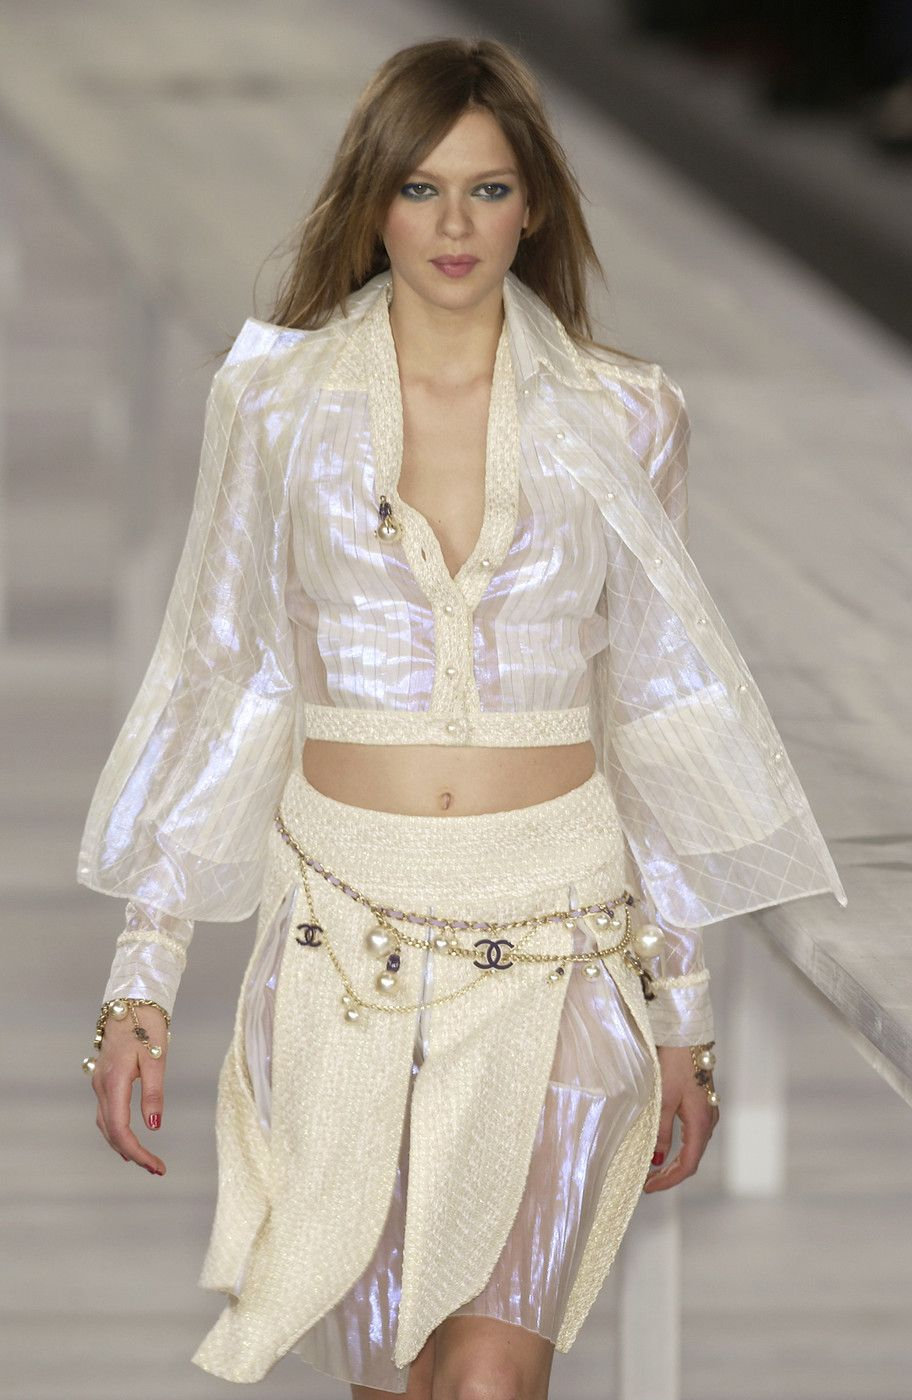 http://www.livingly.com/runway/Chanel/Paris Fashion Week Spring 2004/tTp3EWLfo5e